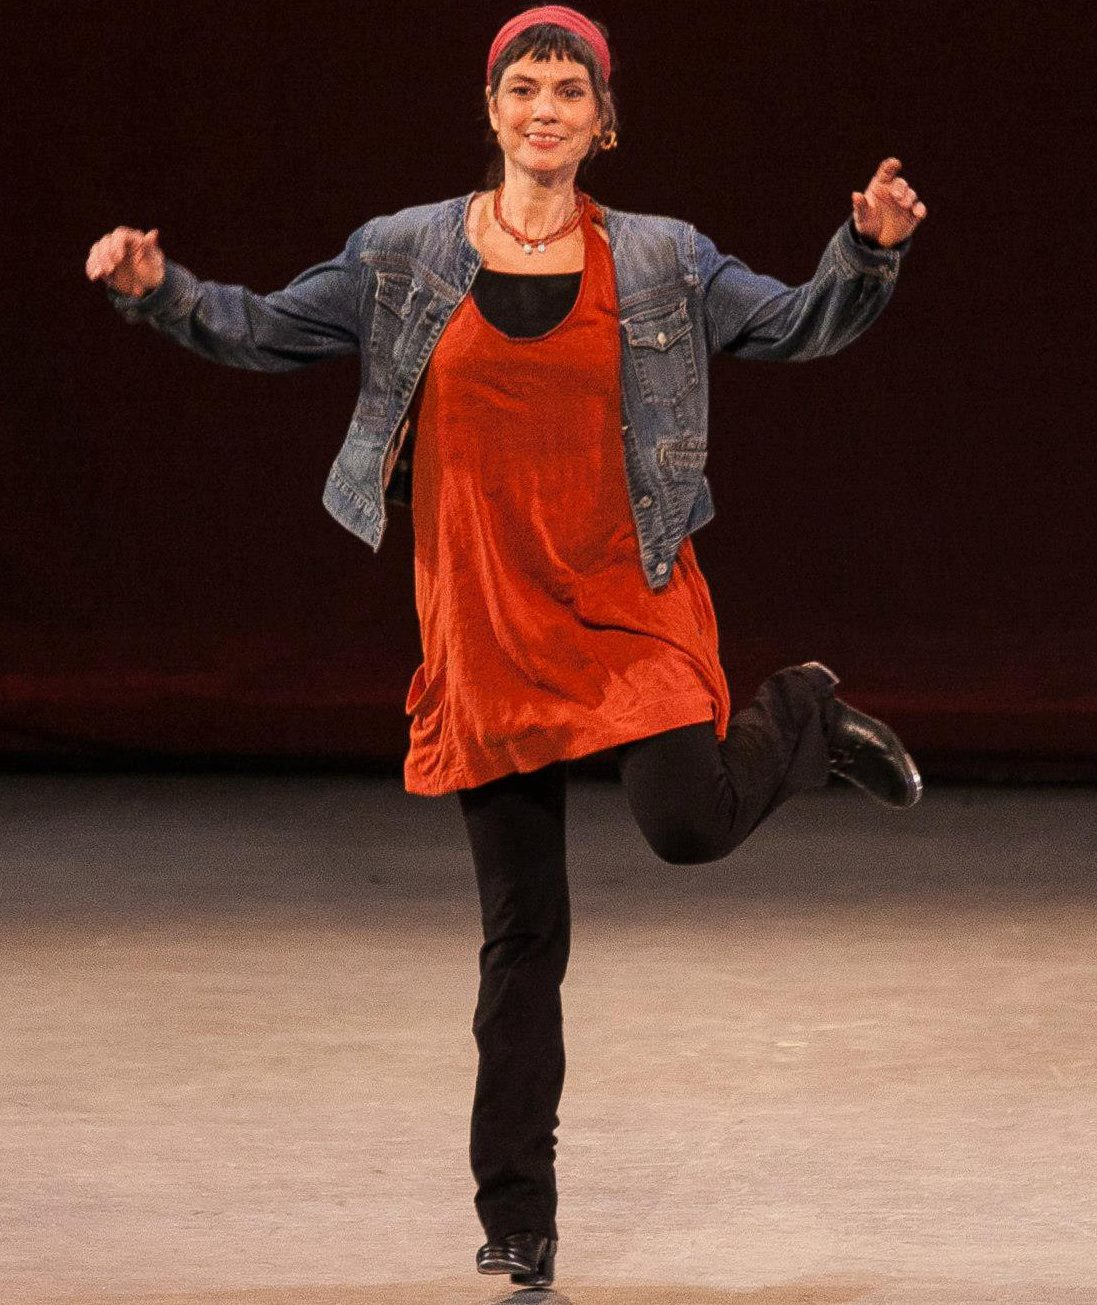 Amy Fenton Shine is an accomplished dancer specializing in clogging. She has toured throughout the United States and abroad with Fiddle Puppets, mesmerizing her audiences with quick footed, percussive dance. She has danced with The Vanaver Caravan since 1999.